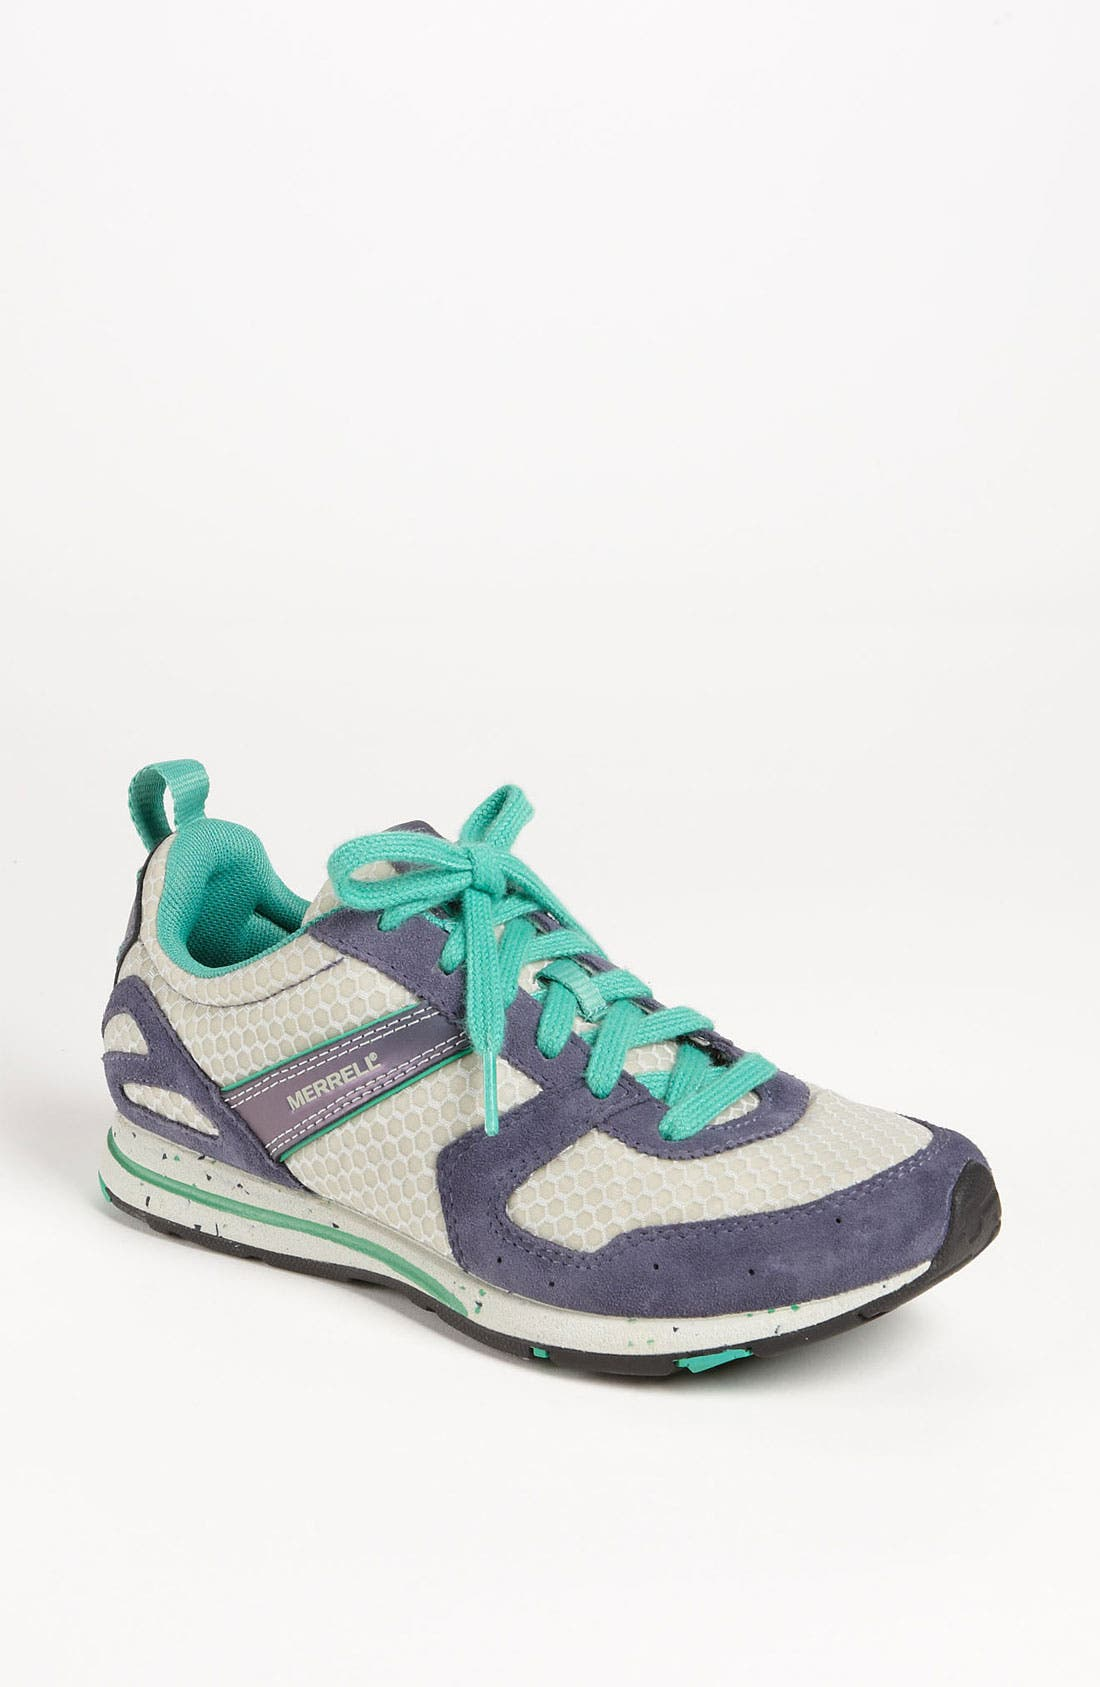 Alternate Image 1 Selected - Merrell 'Kalkora' Sneaker (Women)